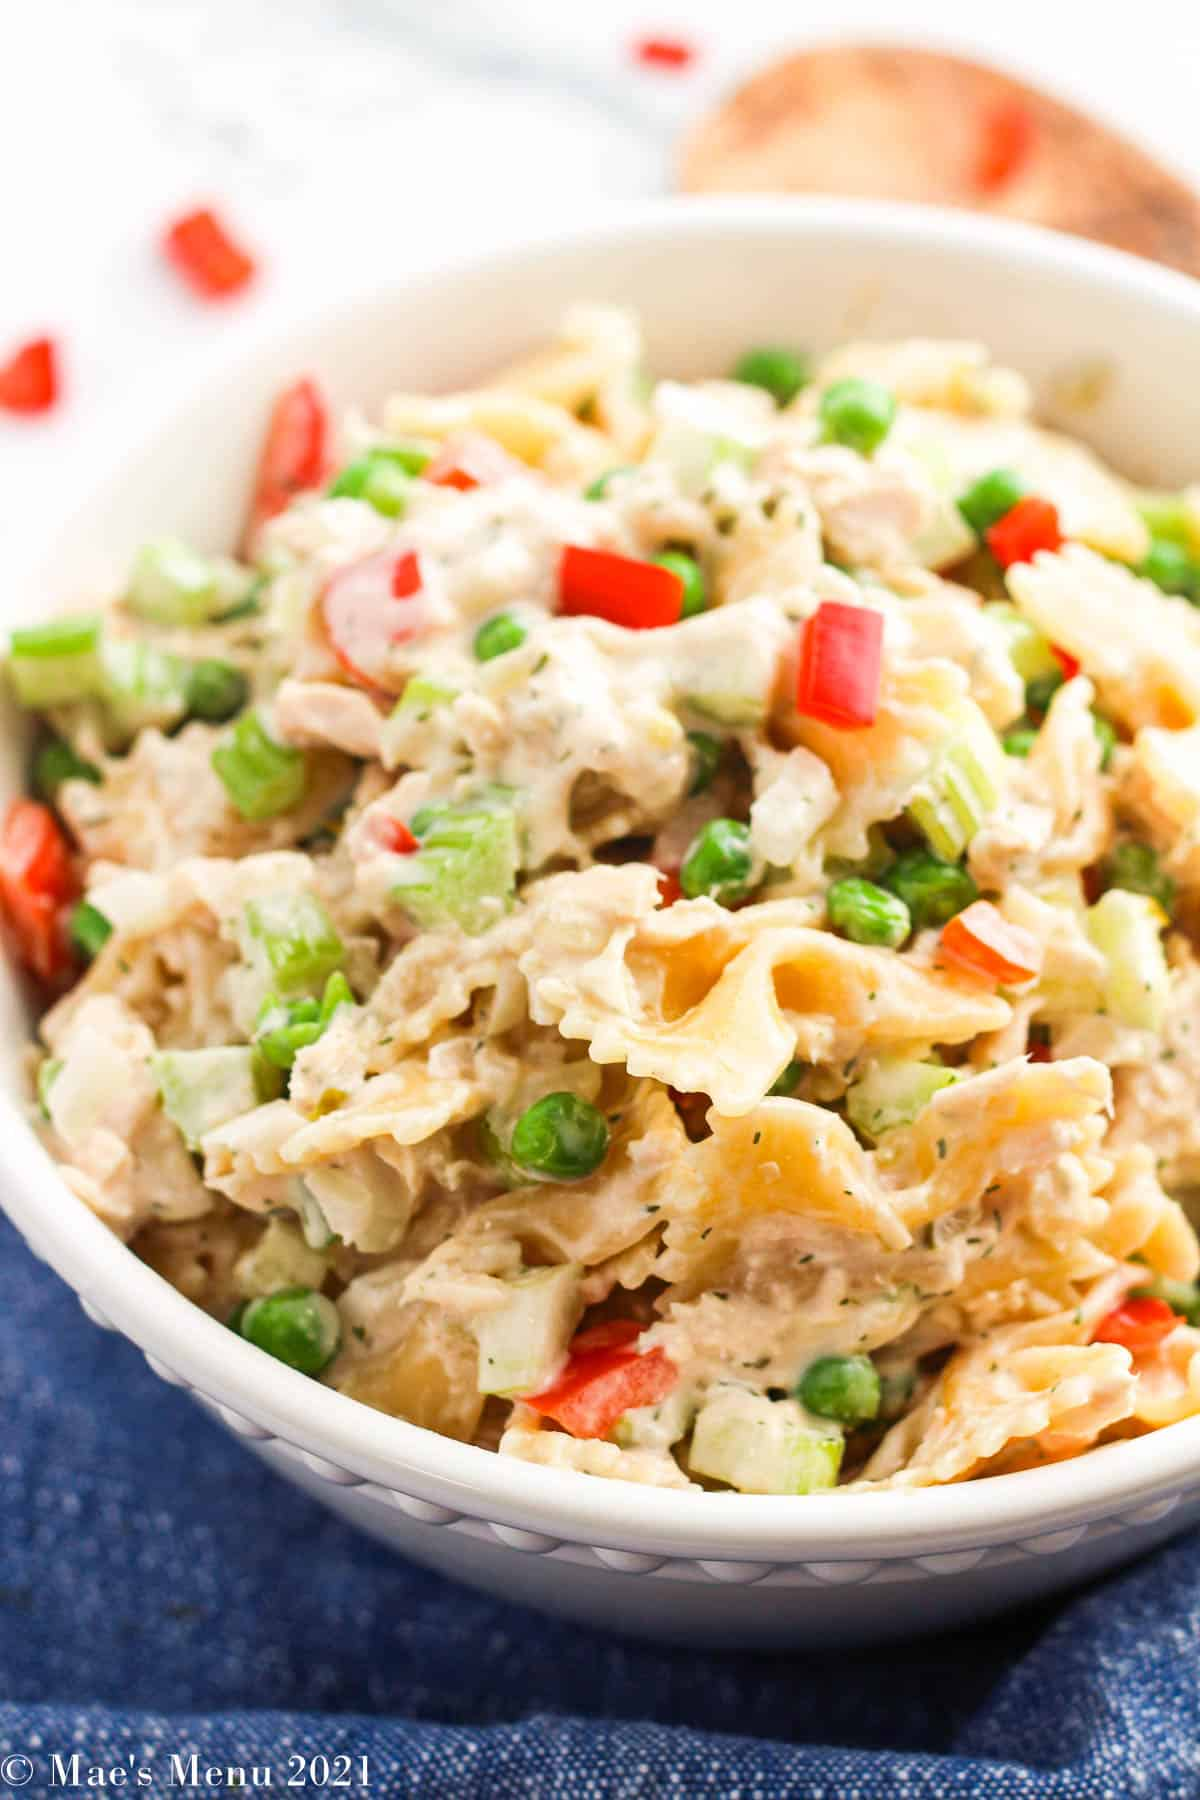 An up-close shot of a bowl of tuna macaroni salad